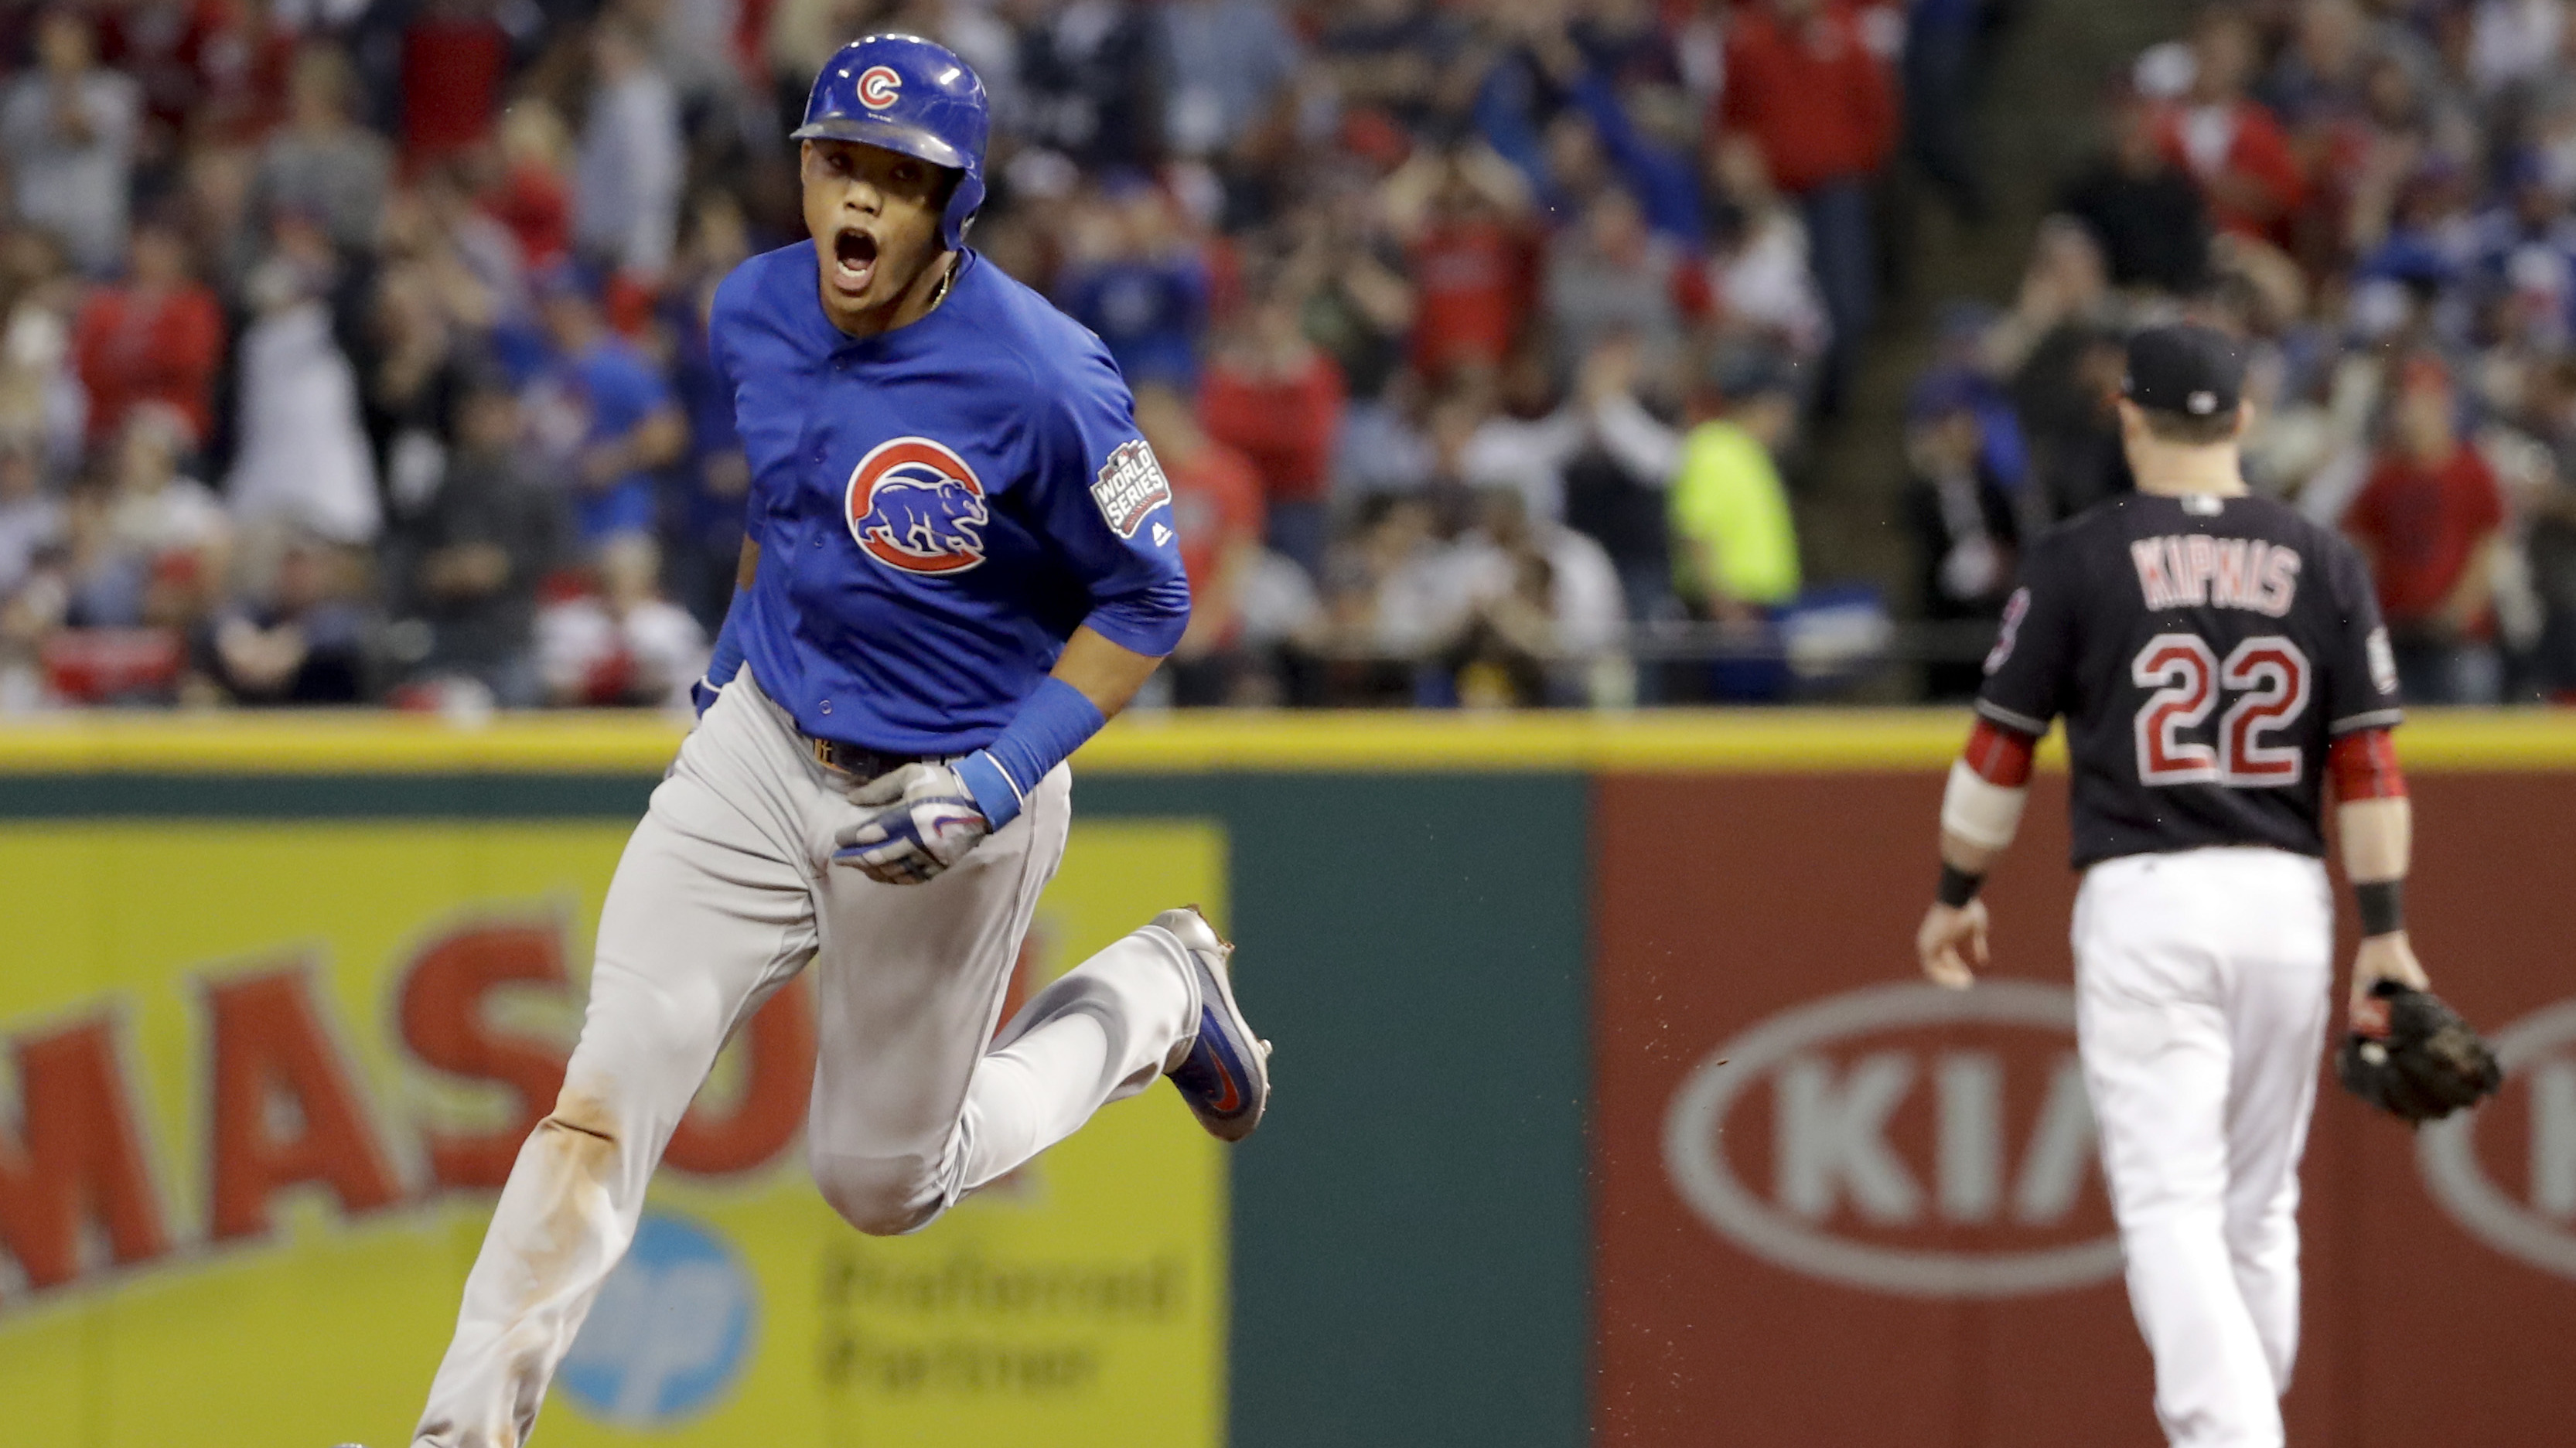 Indians, Cubs play for all the marbles tonight